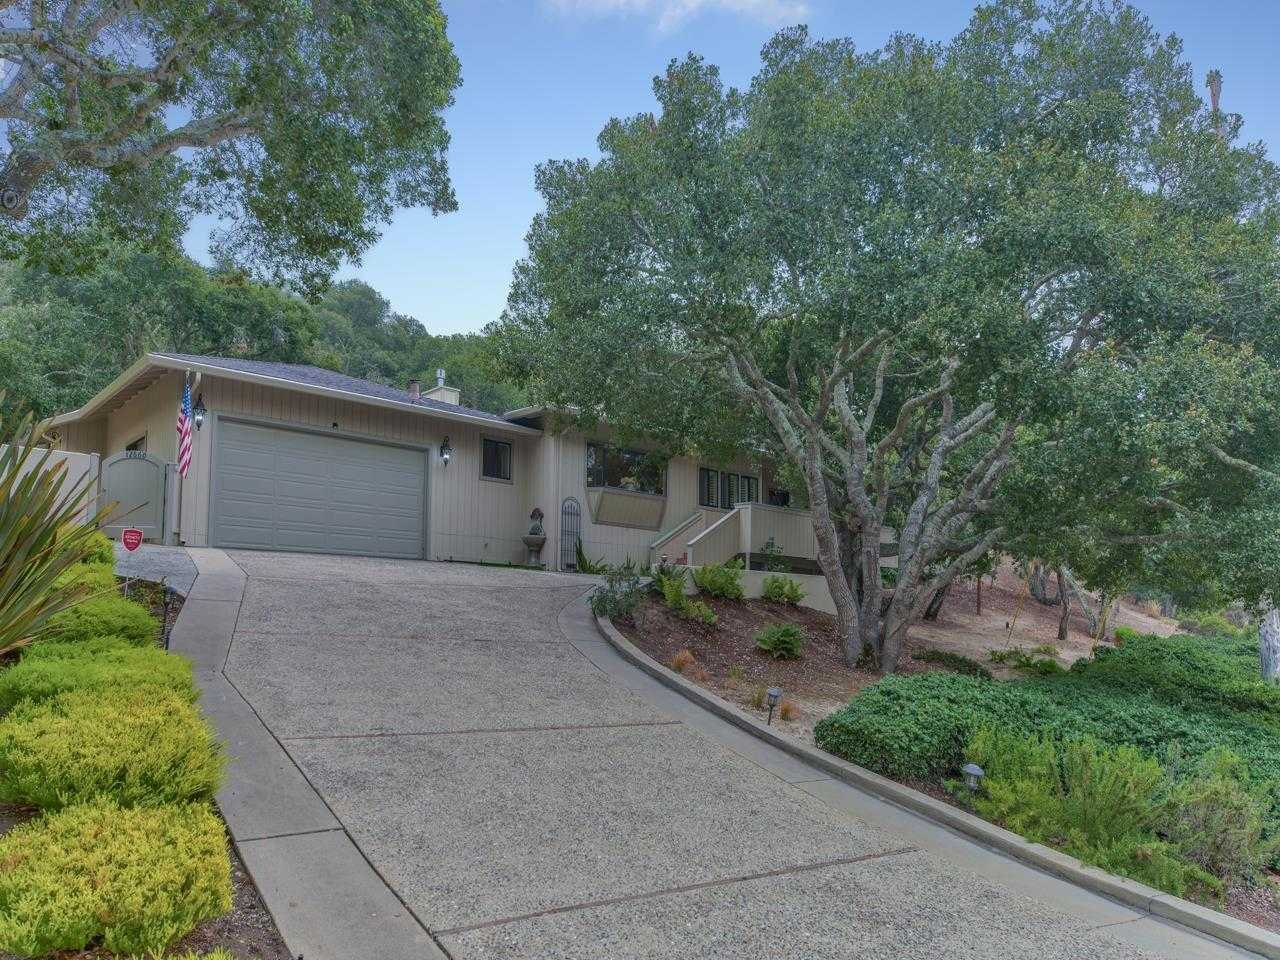 $1,300,000 - 3Br/2Ba -  for Sale in Salinas